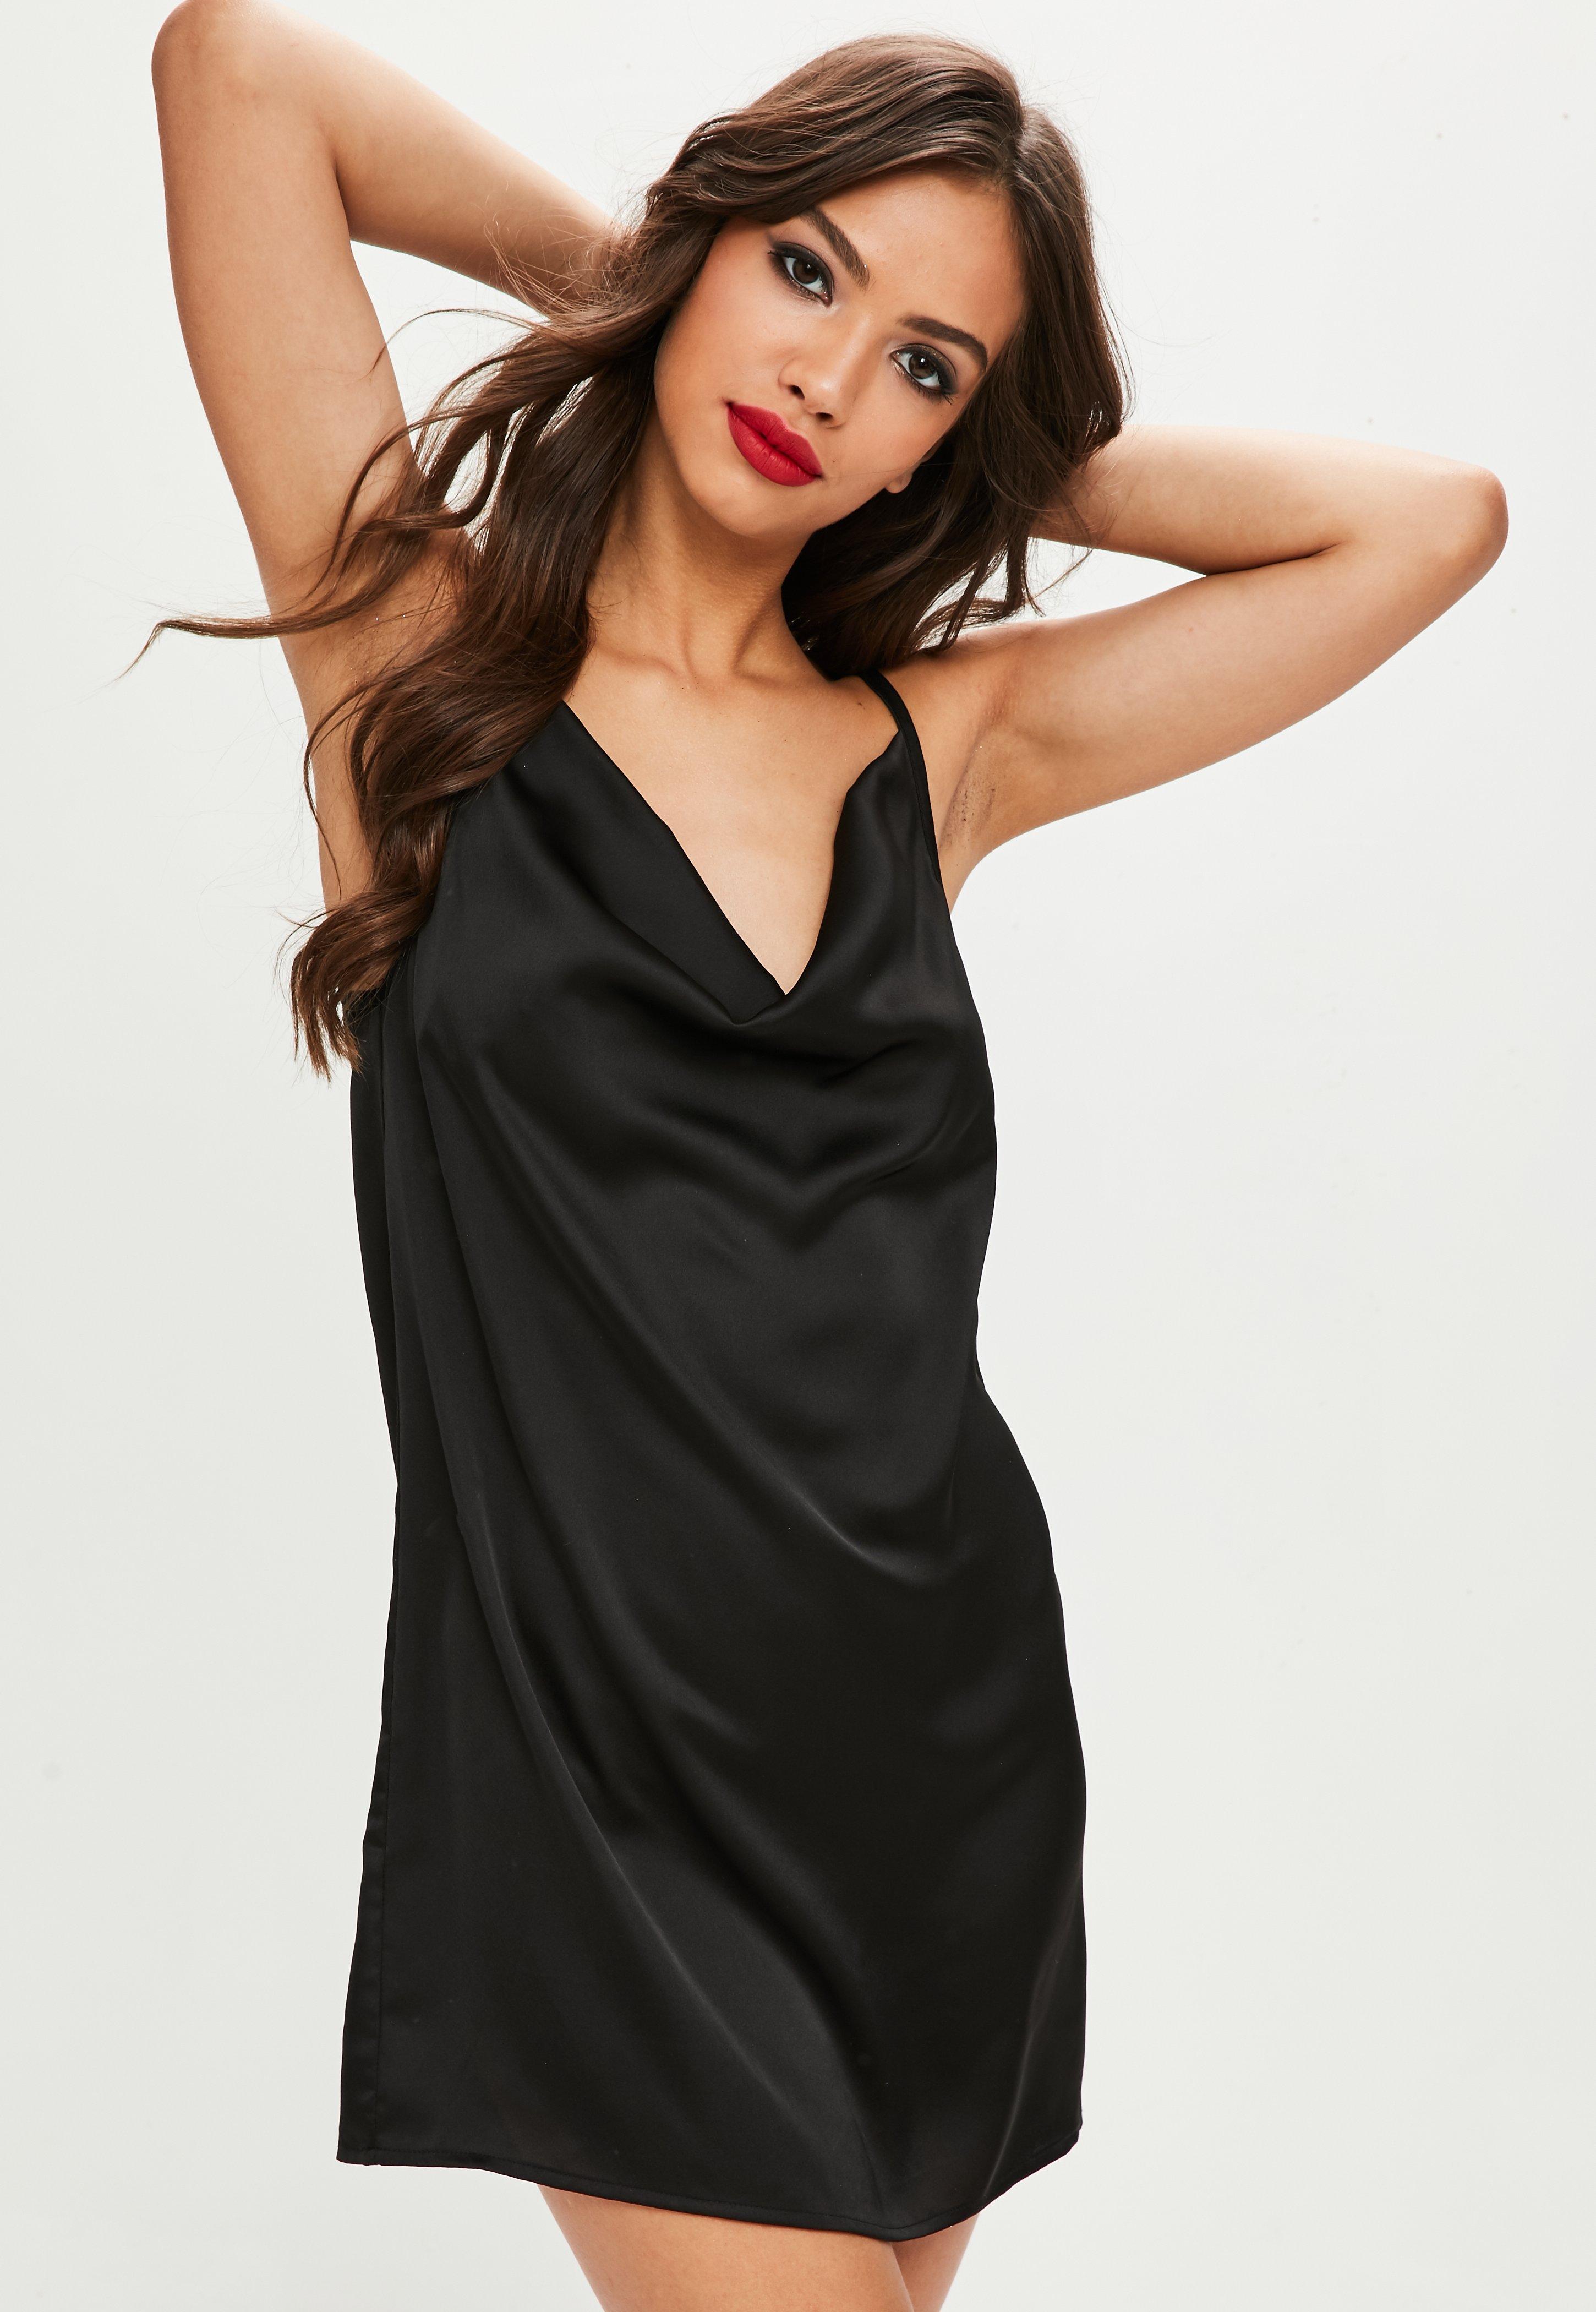 View Cheap Online Cheap Price Discount Authentic Missguided Cowl Neck Satin Slip New And Fashion Cheap Sale Visit 4Q4YPuhaR